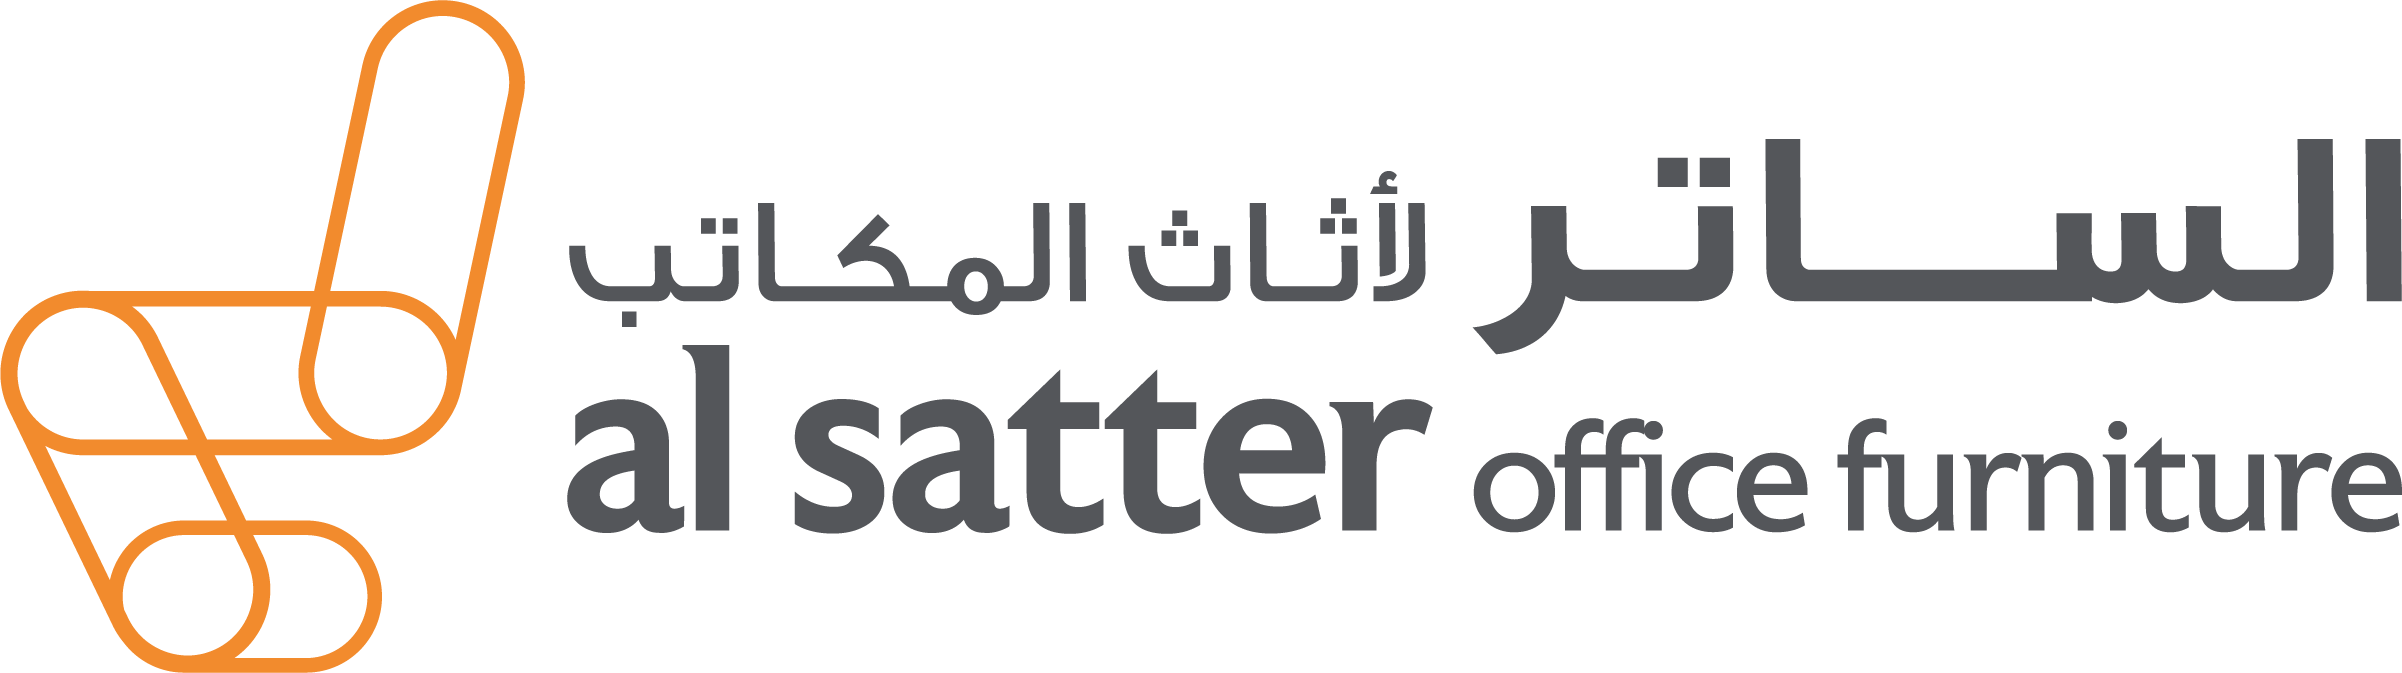 AL Satter office furniture W.L.L